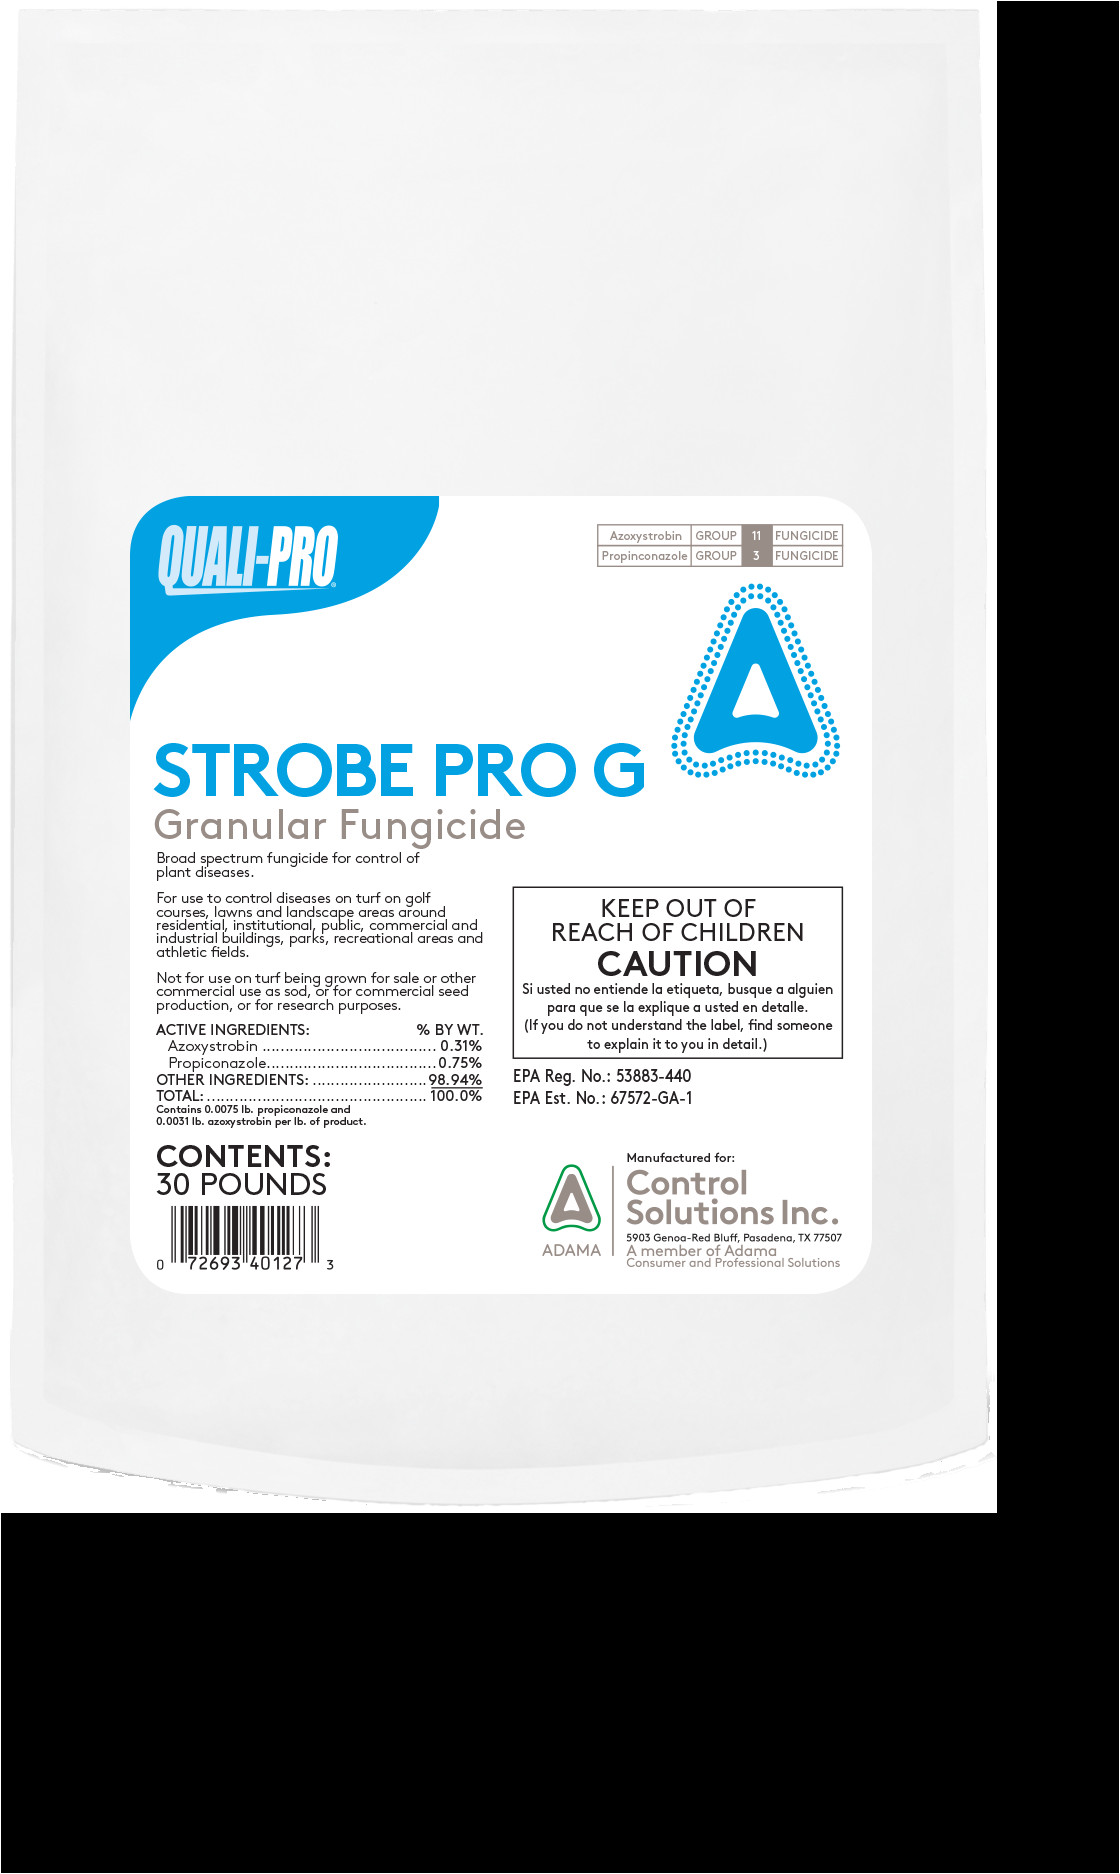 strobe pro g granular fungicide is a combination of two broad spectrum preventative and